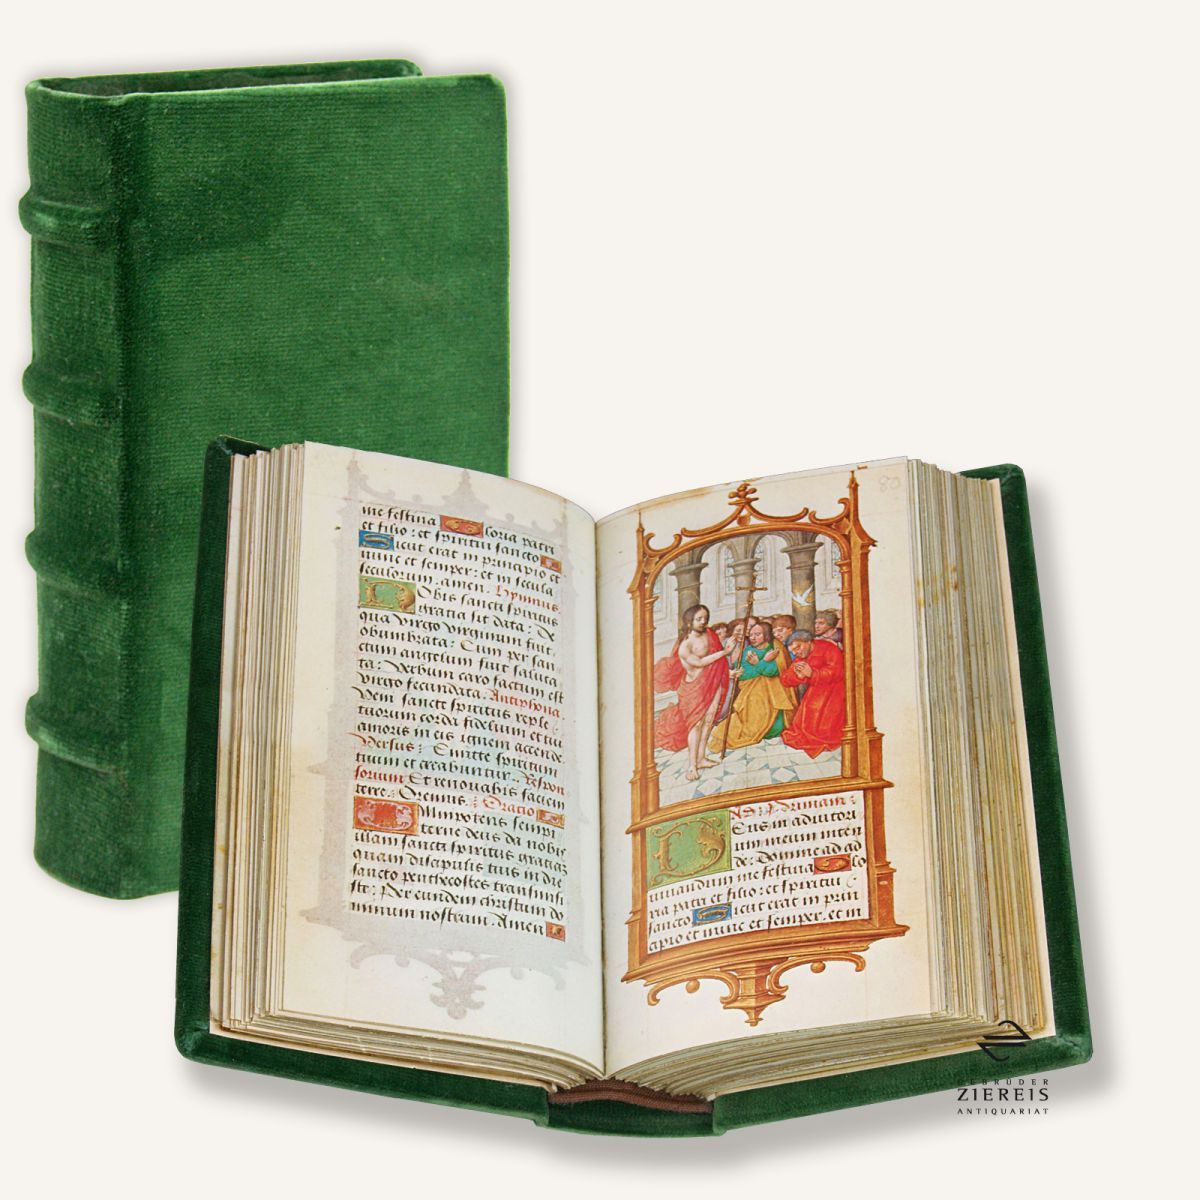 In the time between 1516 and 1519, when the young Charles was not yet Emperor but already King of Spain, he received a prayerbook as a gift. He used it often, which is documented in signs of use which can still be seen today. In his magnificence worthy of a future Emperor this real gem received a place in the library of Emperor Charles V. Today the manuscript is kept as Cod. Vindobonensis 1859 in the Österreichische Nationalbibliothek in Vienna.